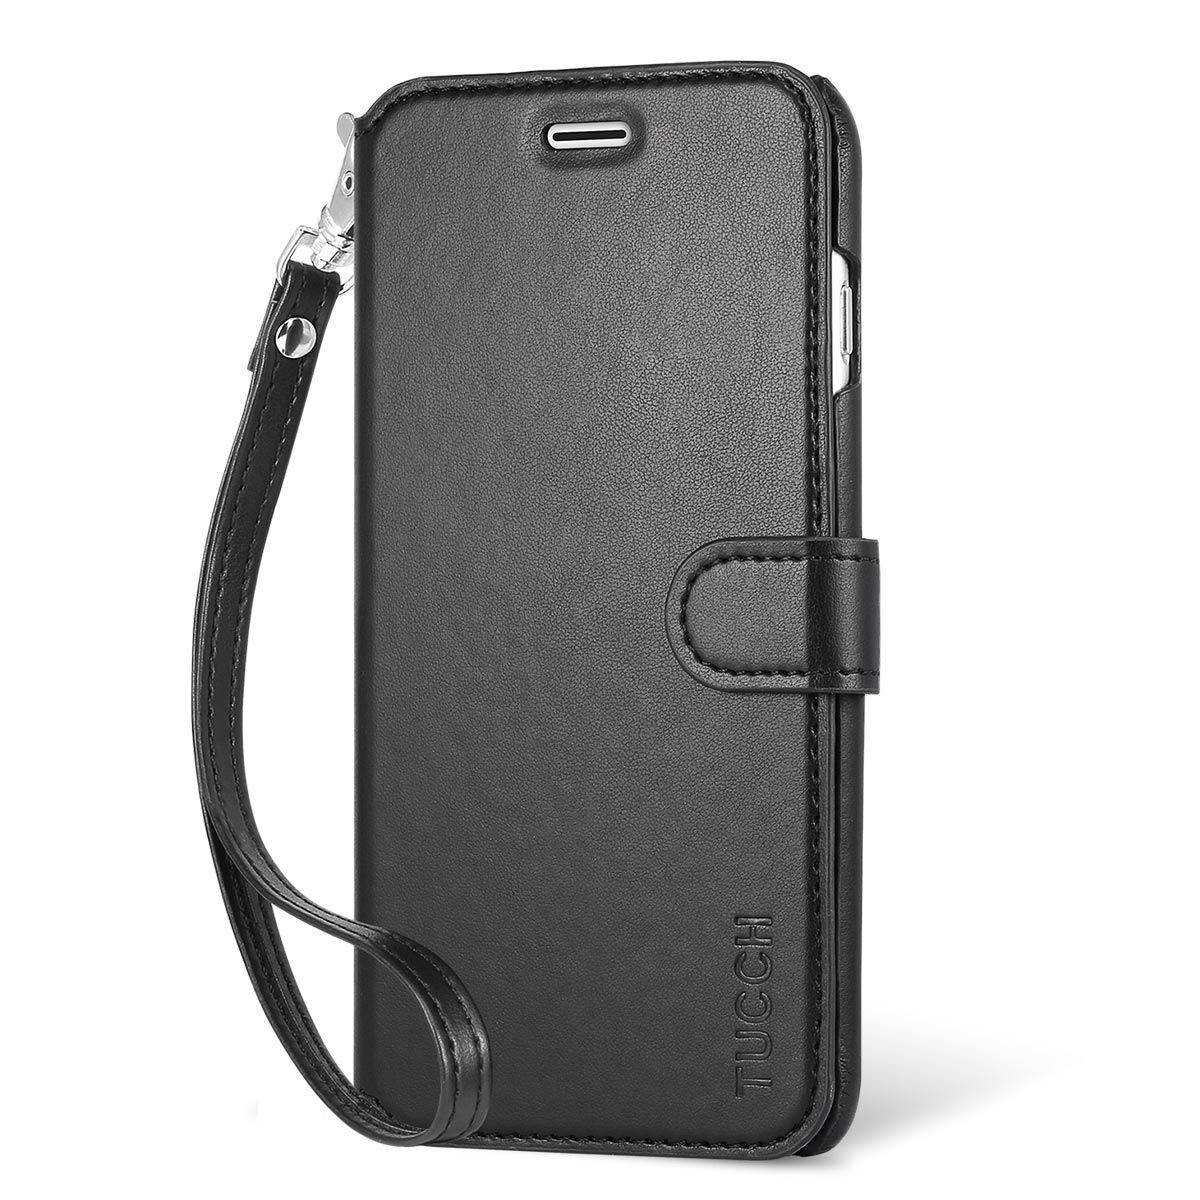 official photos c95ac 01e36 TUCCH iPhone 6S / 6 Plus Case, Wrist Strap, Wallet Case